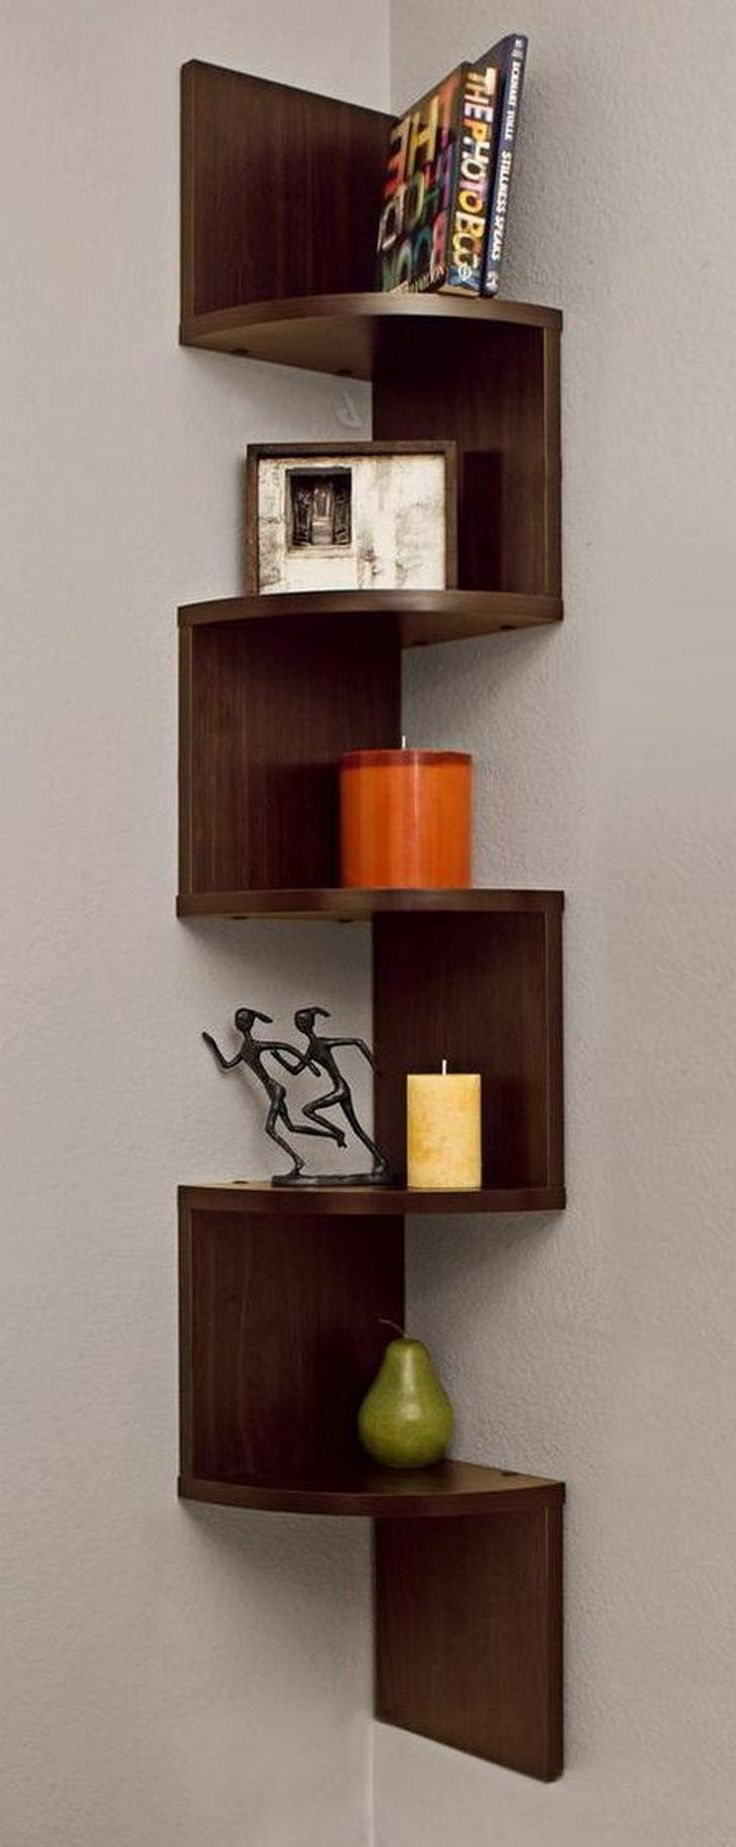 Beau 10 DIY Amazing Shelves